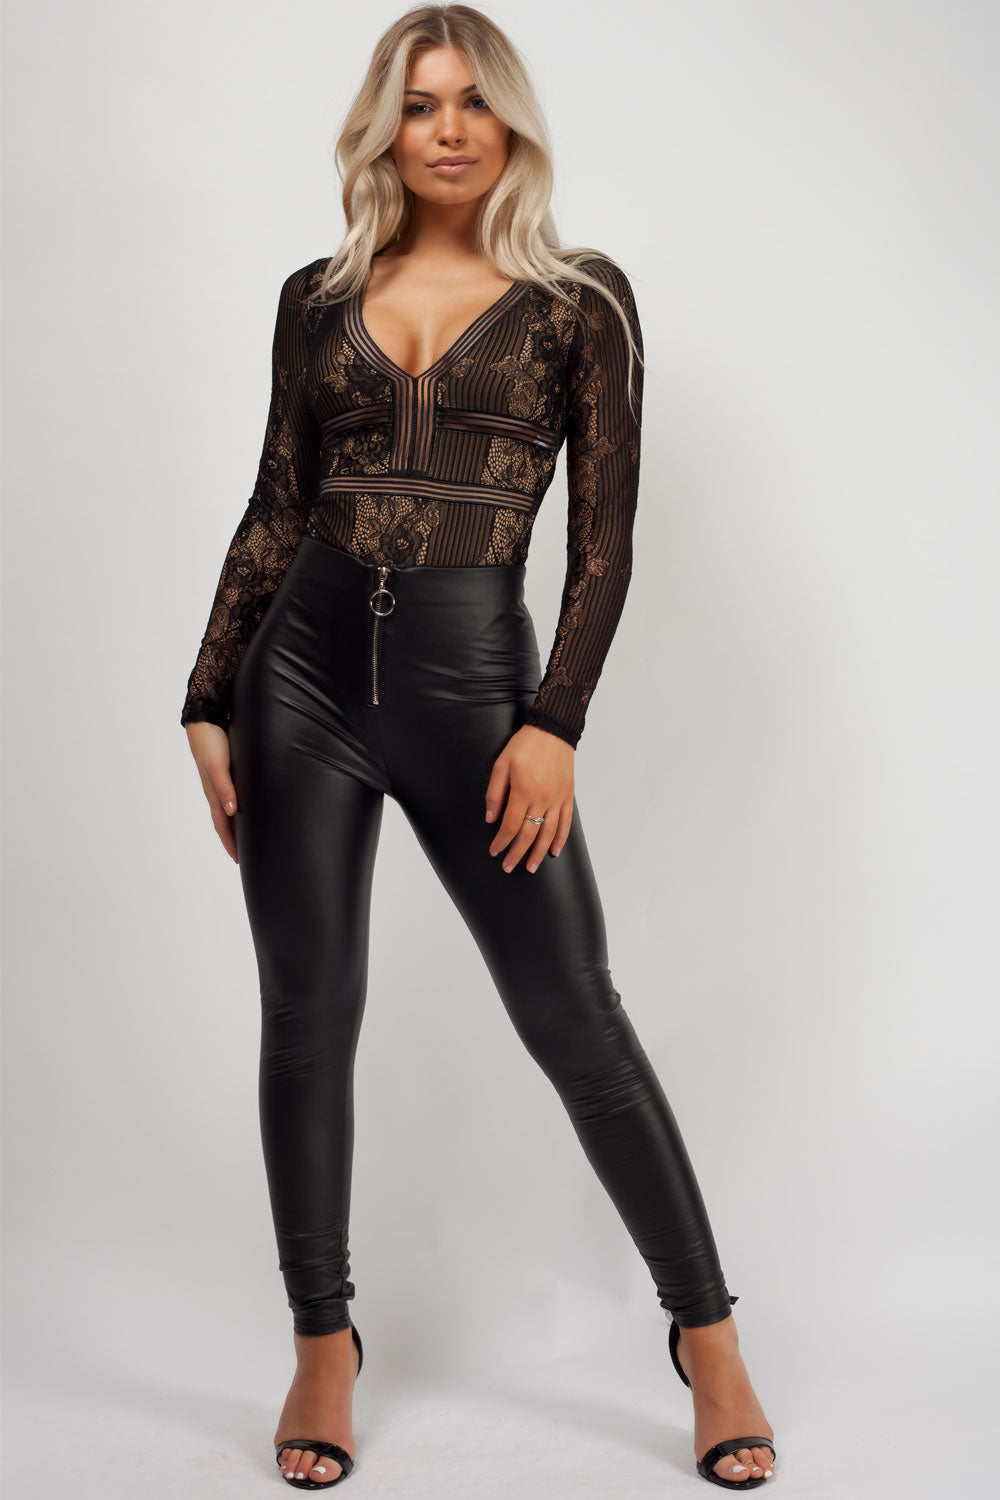 long sleeve bodysuit styledup fashion